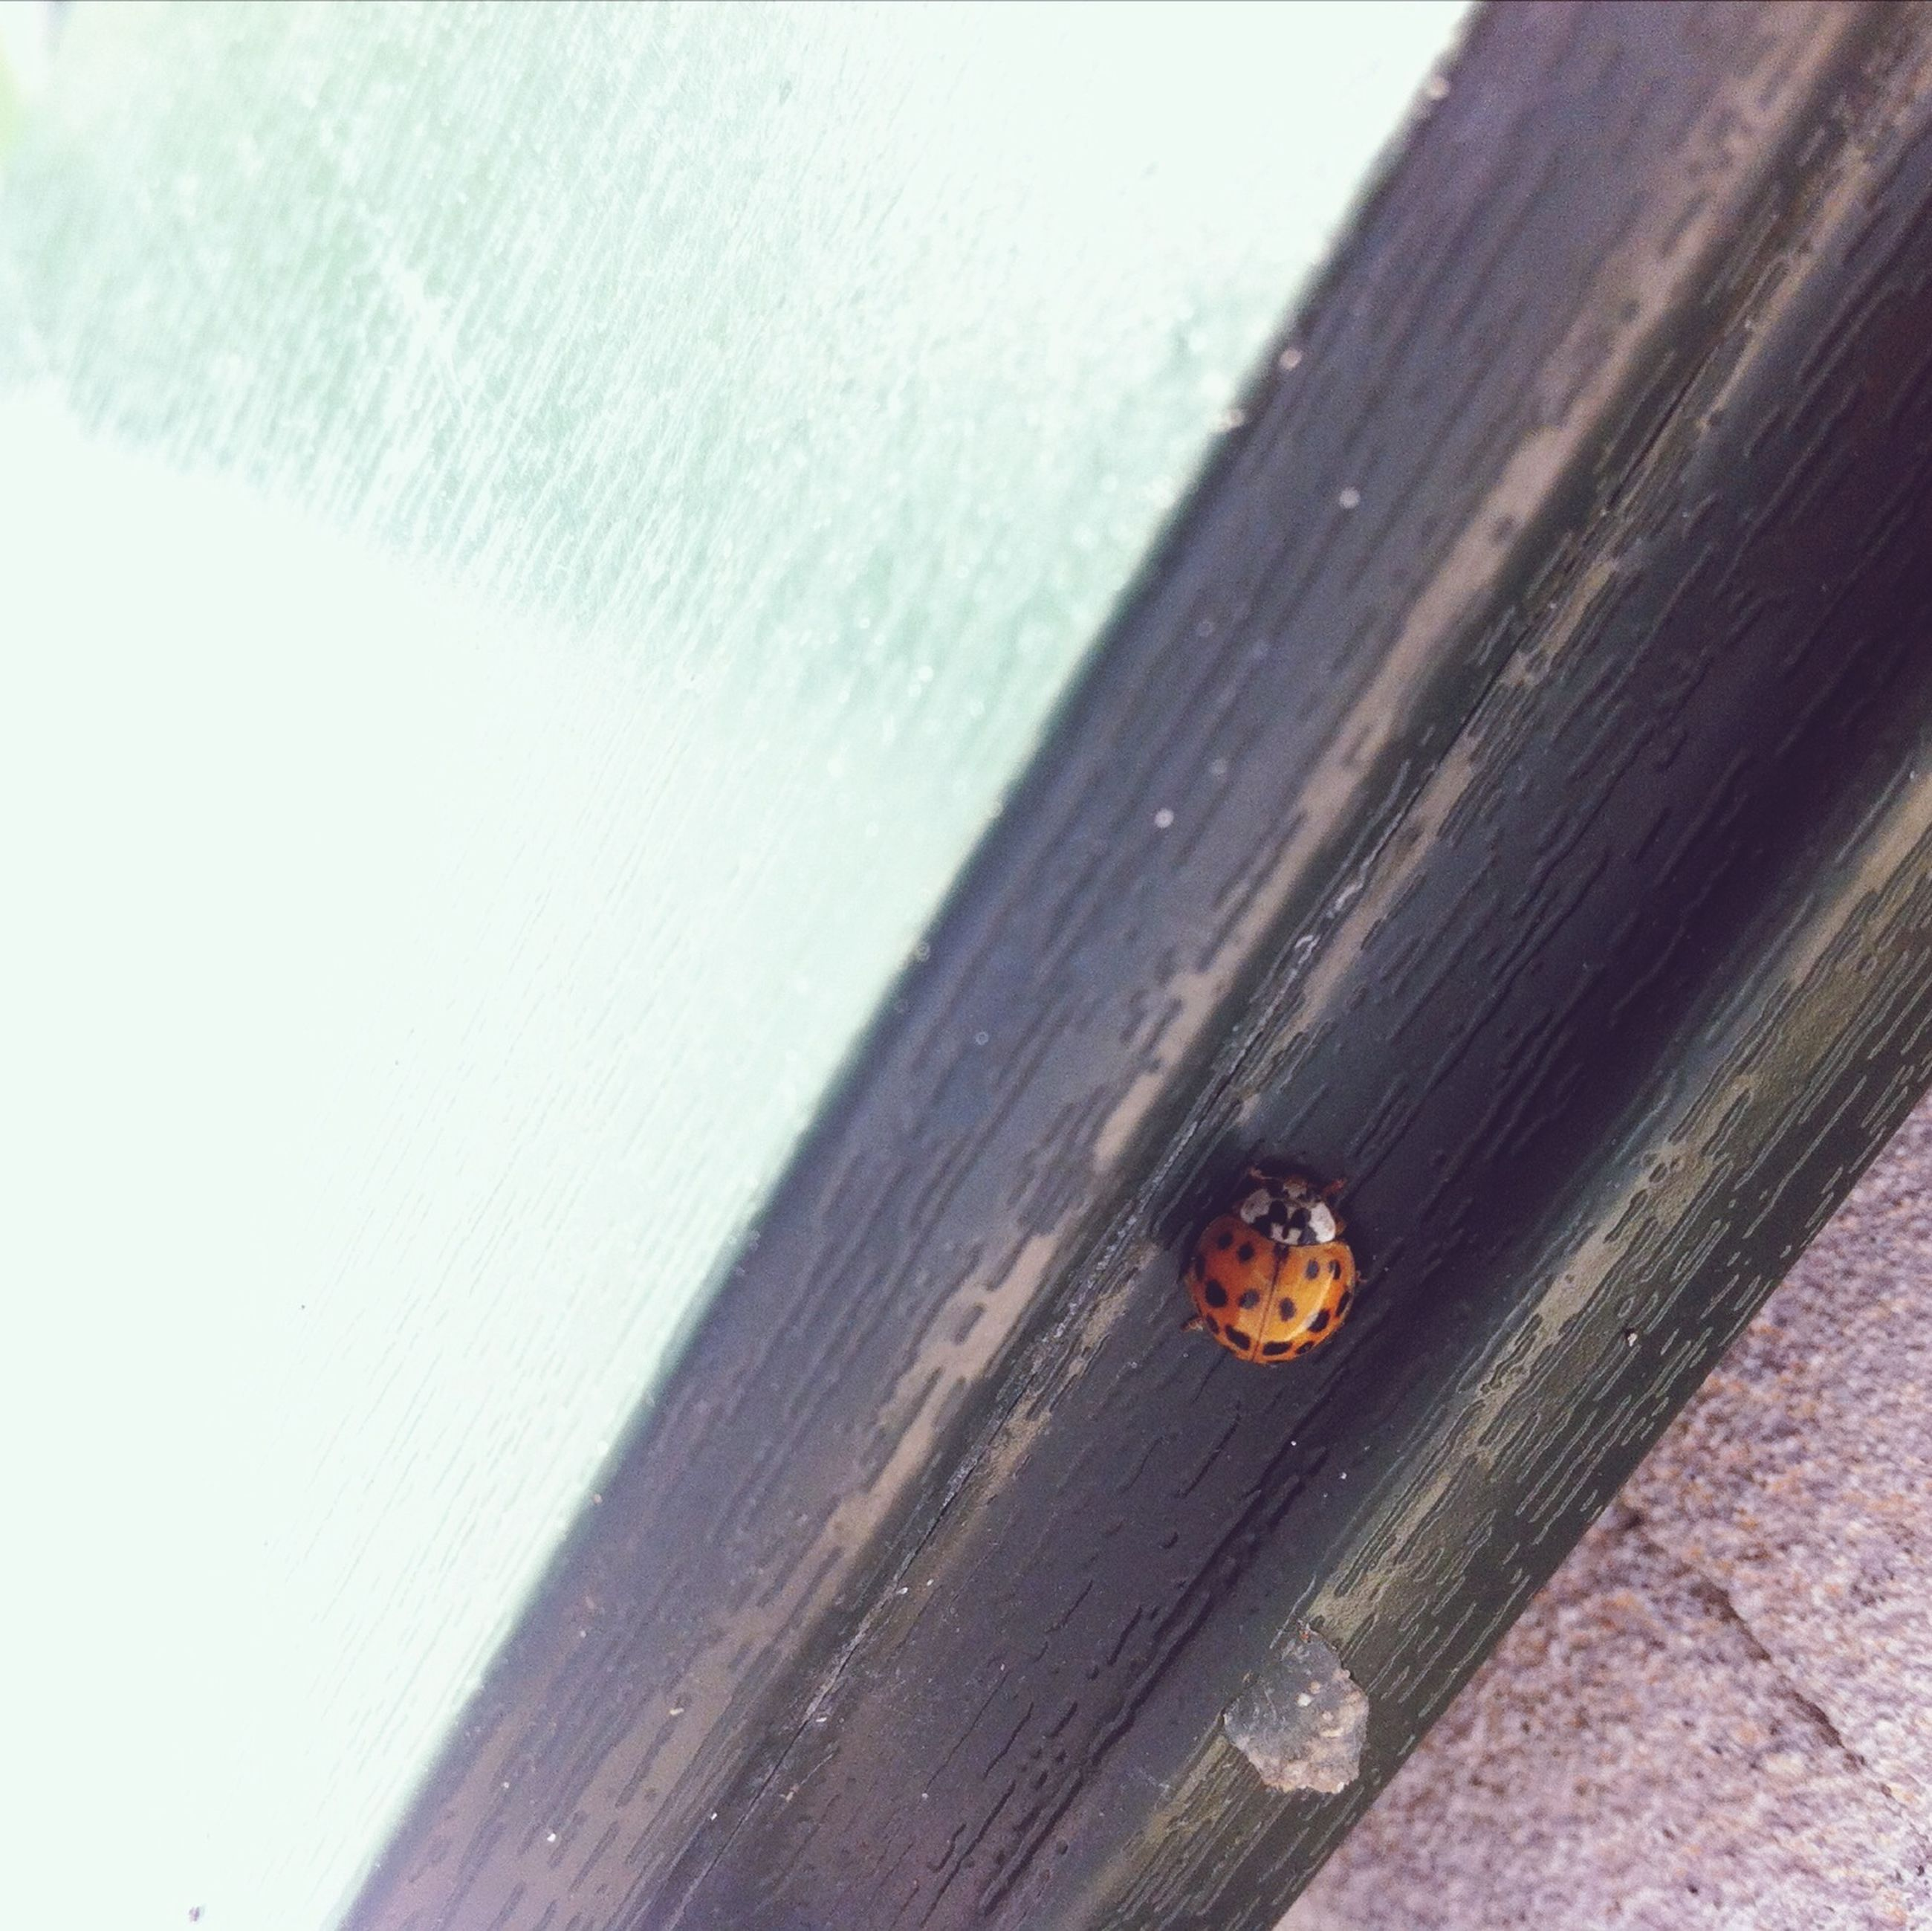 wood - material, insect, animal themes, wooden, animals in the wild, wildlife, one animal, plank, close-up, wood, nature, outdoors, day, textured, high angle view, wall - building feature, selective focus, no people, sunlight, water